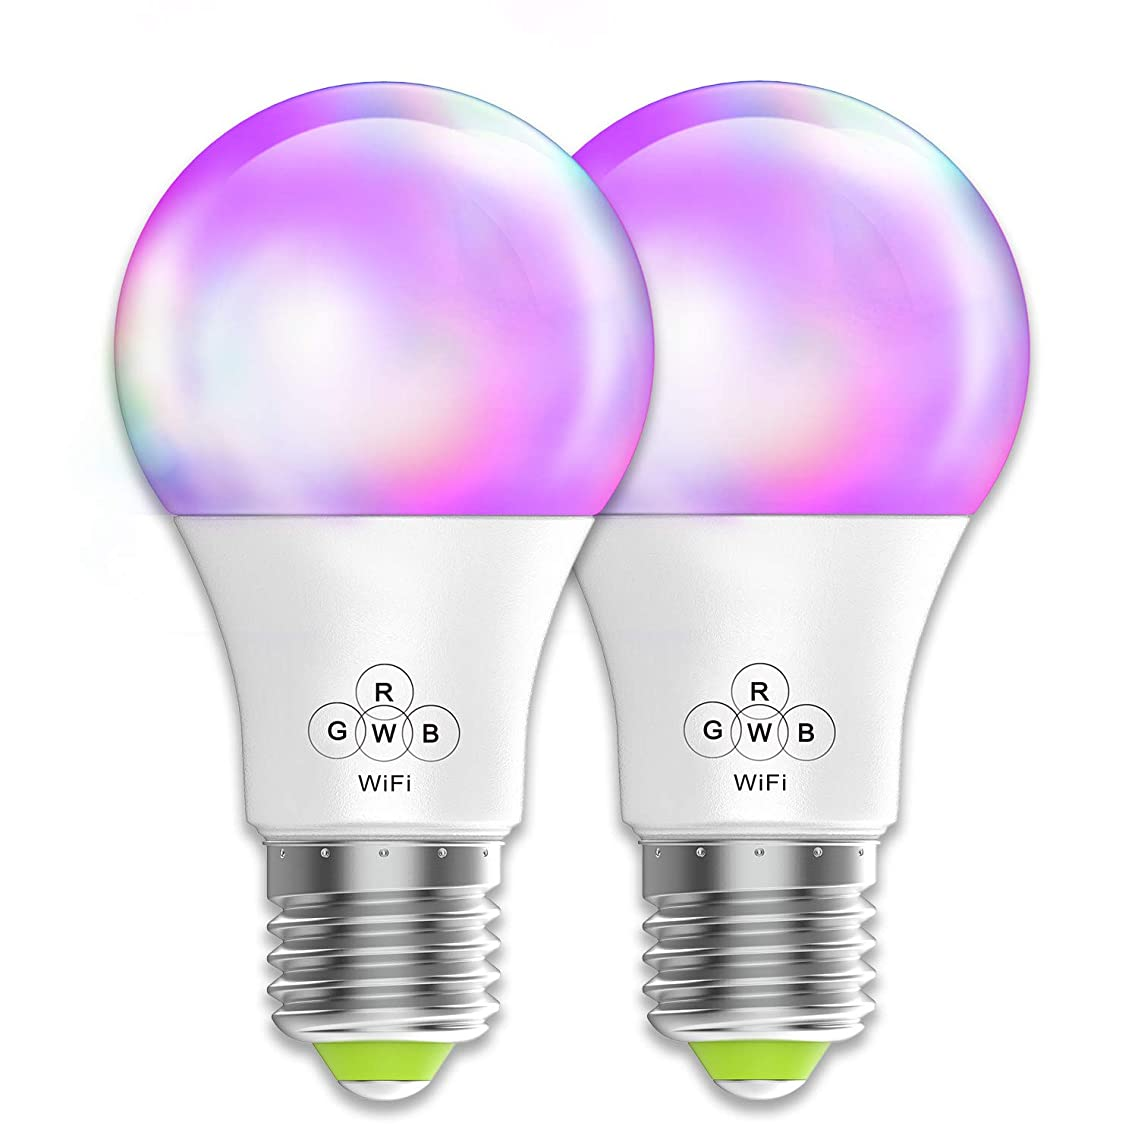 Magic Hue Smart WiFi Light Bulb, No Hub Required, A19 E26 40 Watt Equivalent Multicolored Wall Lamps & Sconces, Compatible with Alexa Google Home and Siri Shortcut - 2 Pack